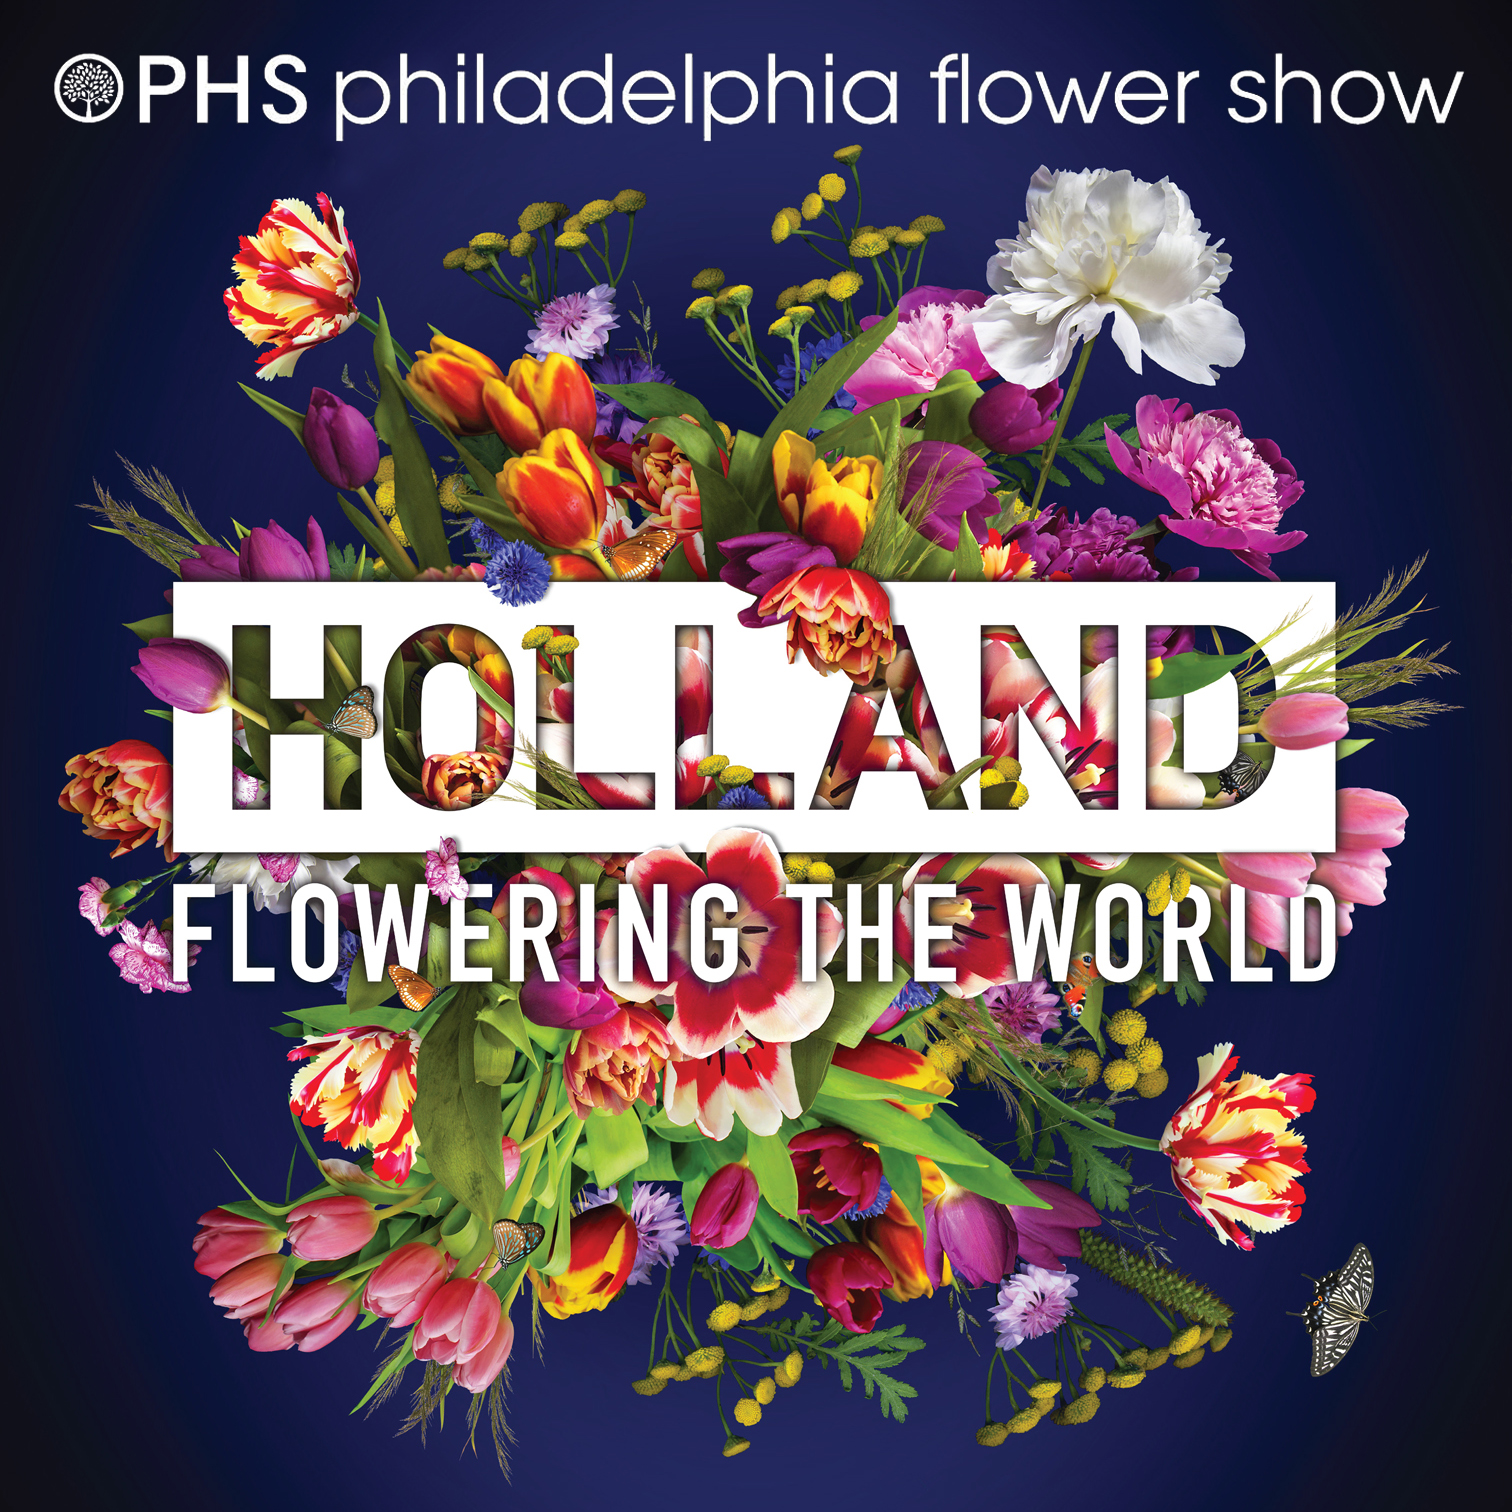 The poster design that was selected for the 2017 PHS Philadelphia Flower Show (Pennsylvania Horticultural Society's annual fundraising event).